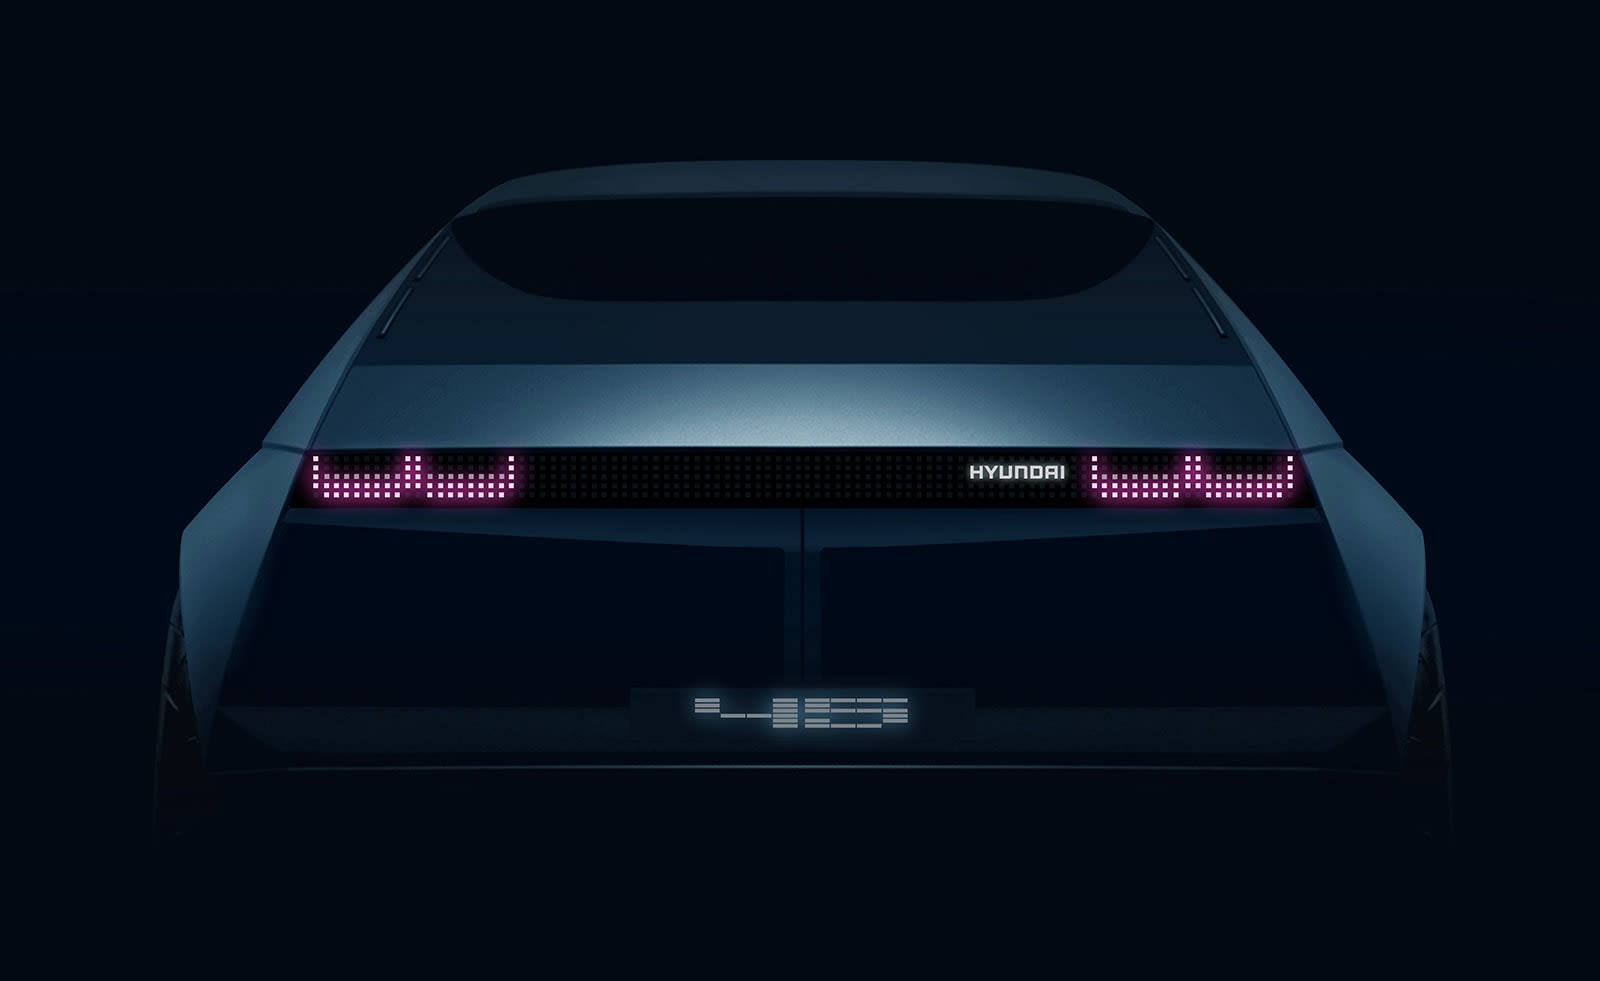 Hyundai teases all-electric concept '45' for Frankfurt